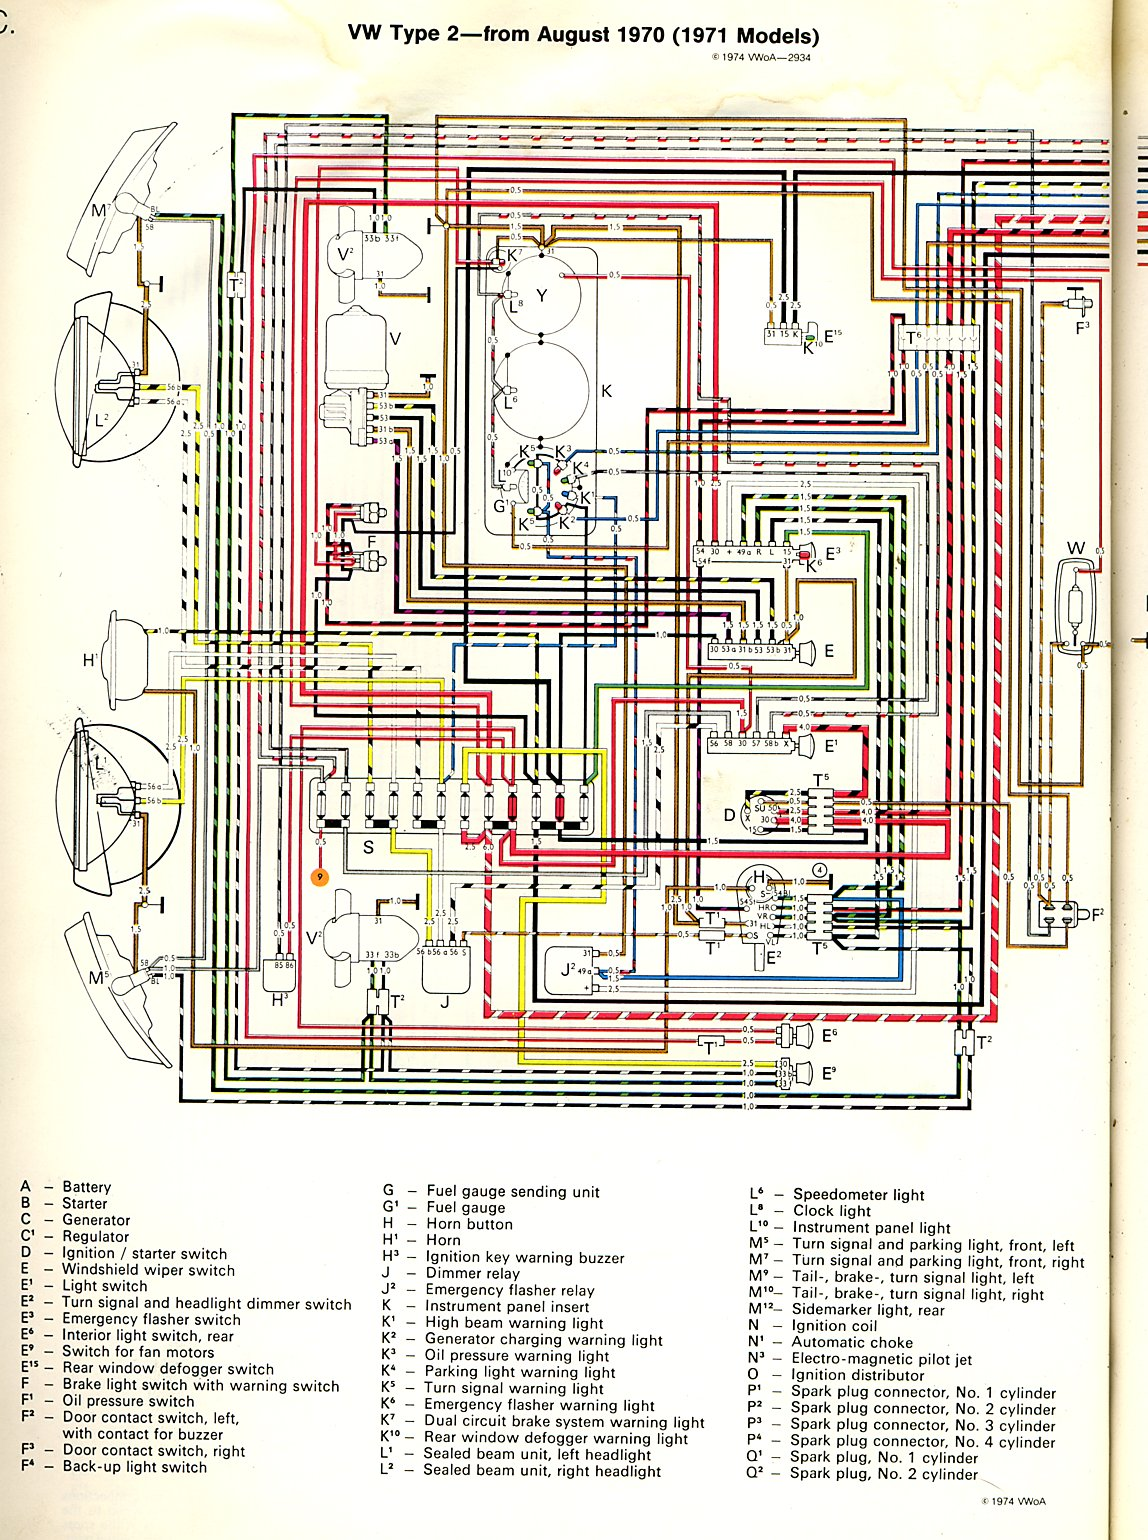 baybus_71a vw bus wiring diagram 1965 vw bus wiring diagram \u2022 wiring diagrams wiring diagram for 71 super beetle at soozxer.org